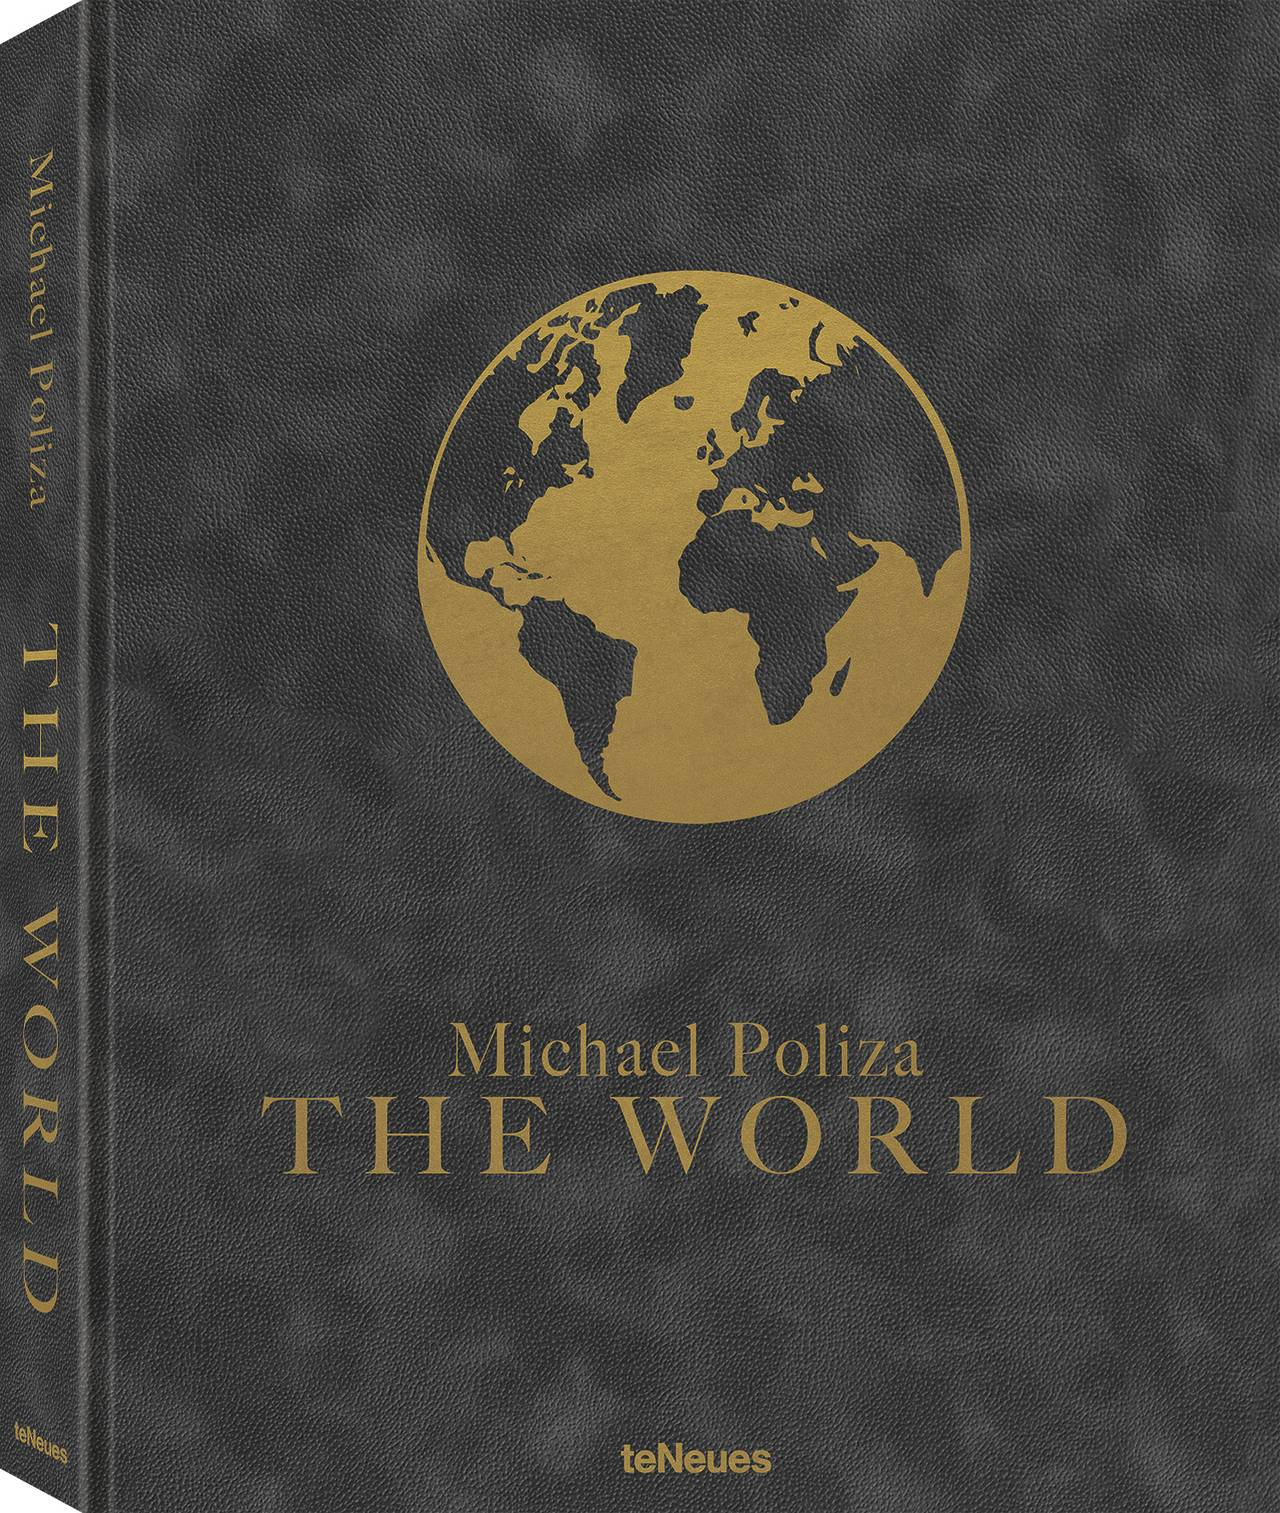 © THE WORLD by Michael Poliza, published by teNeues, www.teneues.com, Hopkins Valley near Lake Ohau, South Island, Photo © 2019 Michael Poliza. All rights reserved. www.michaelpoliza.com, www.michaelpolizatravel.com